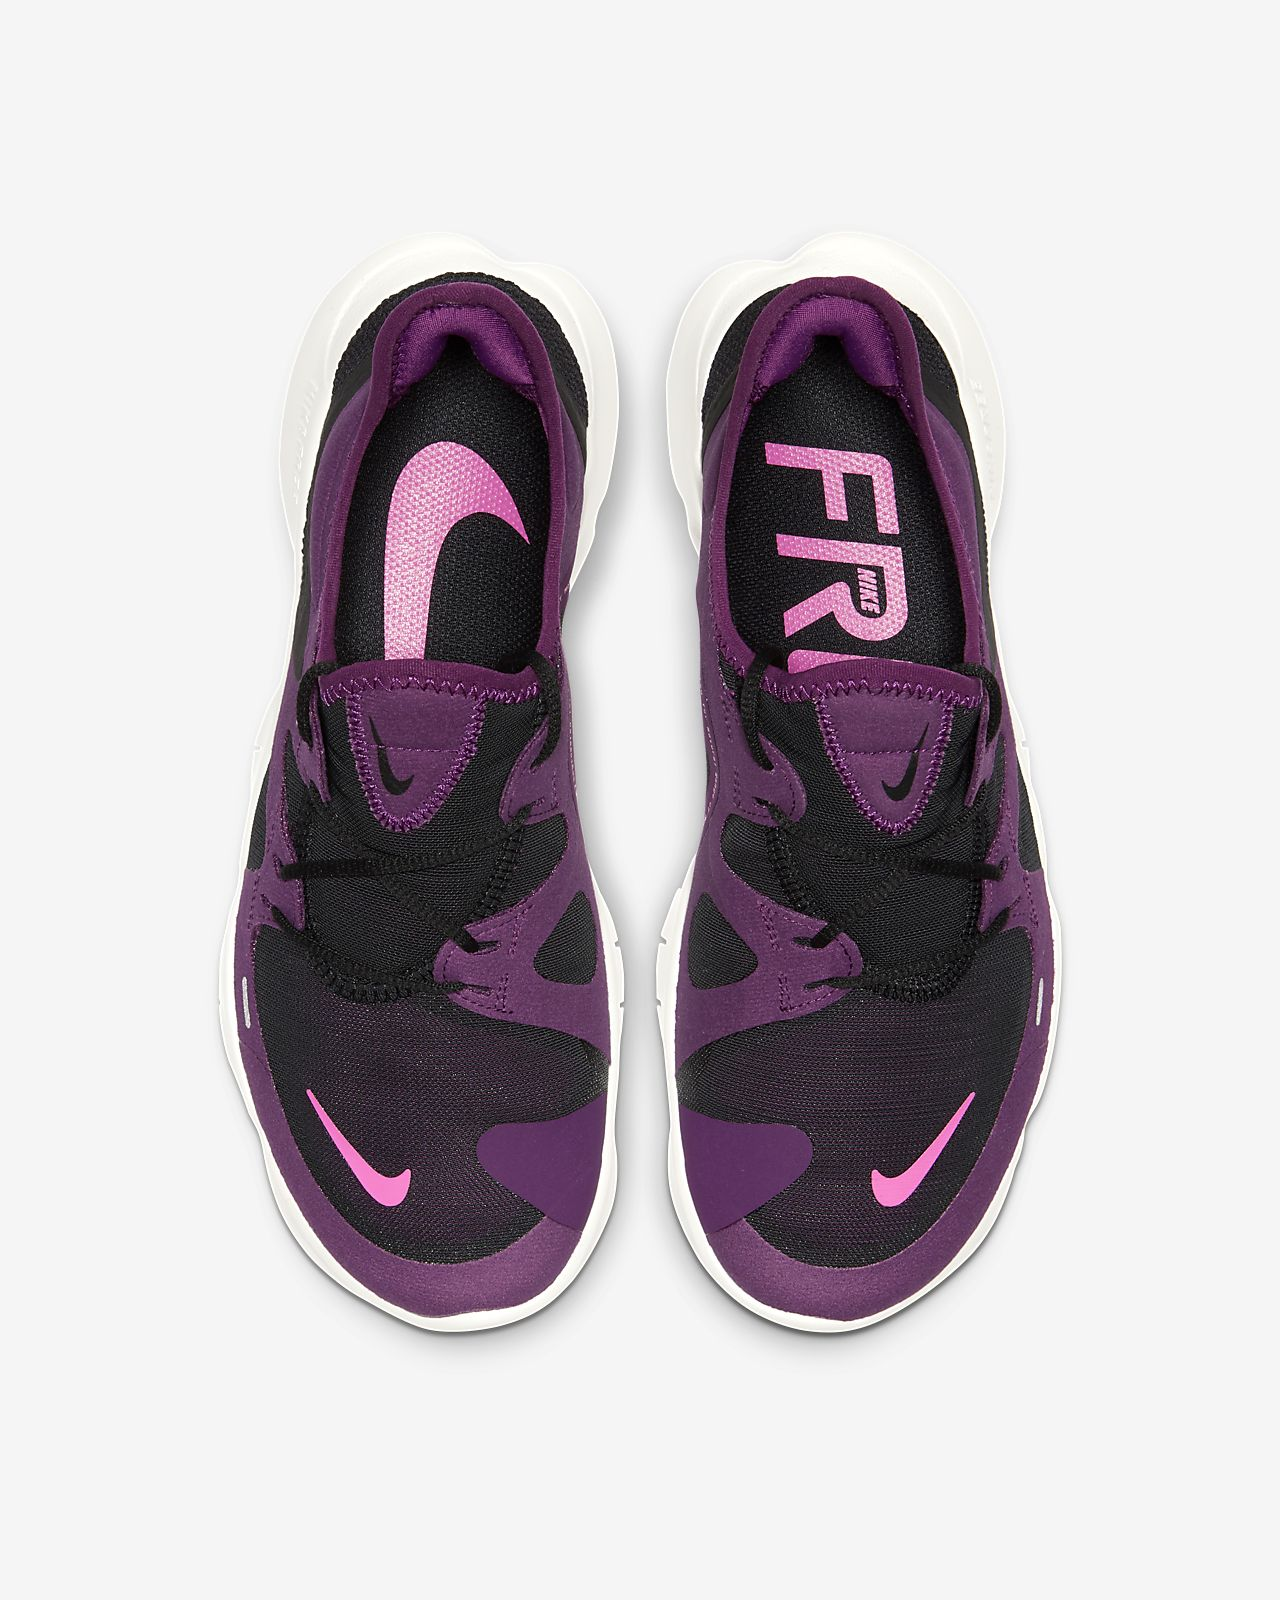 Buy nike free rn flyknit review mens 2017 > up to 75% Discounts